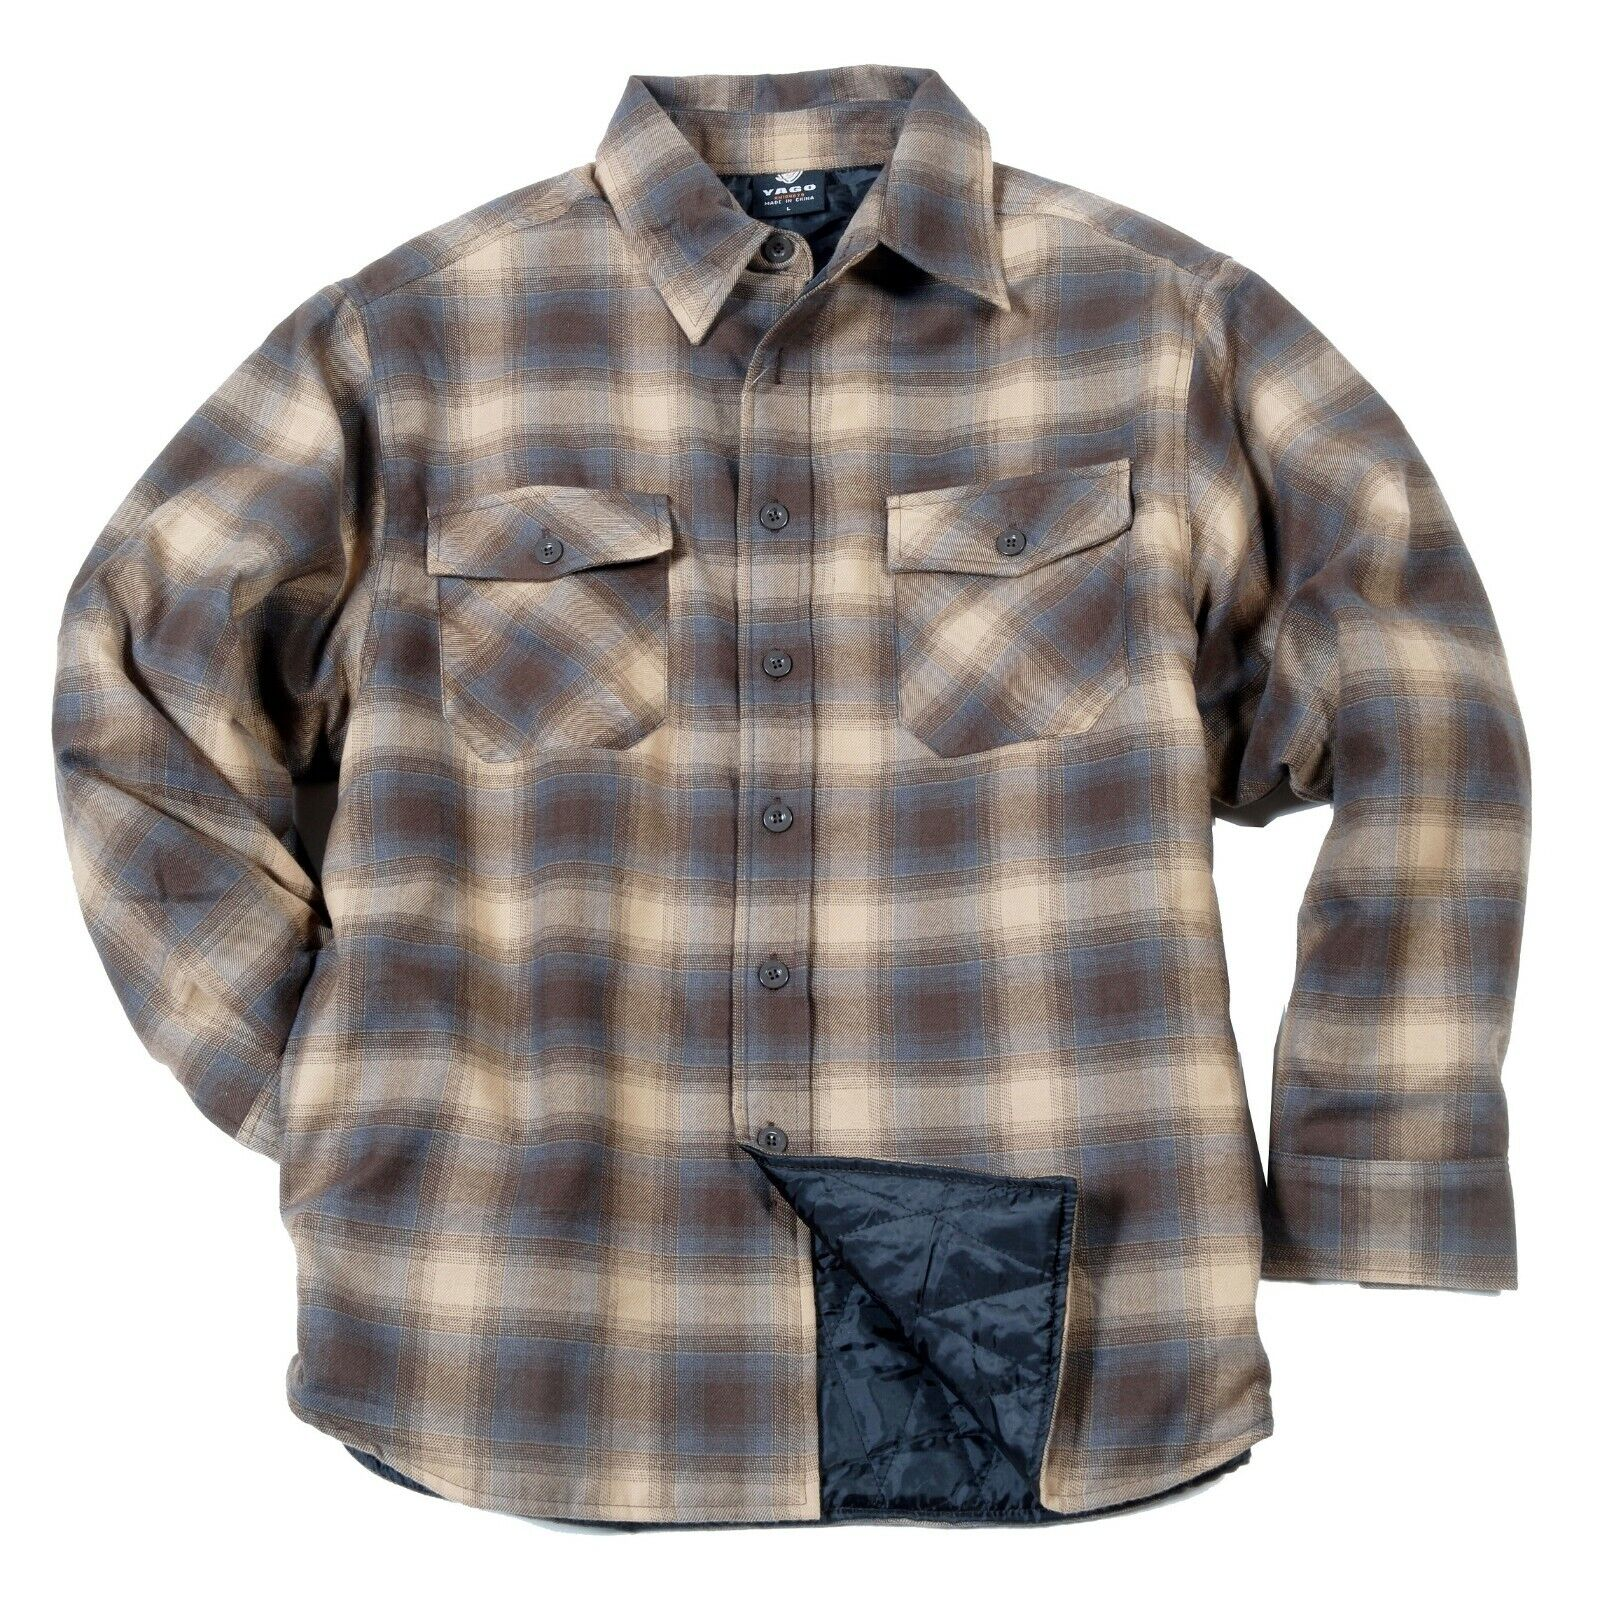 YAGO Men's Plaid Flannel Button Down Casual Shirt Jacket Bei